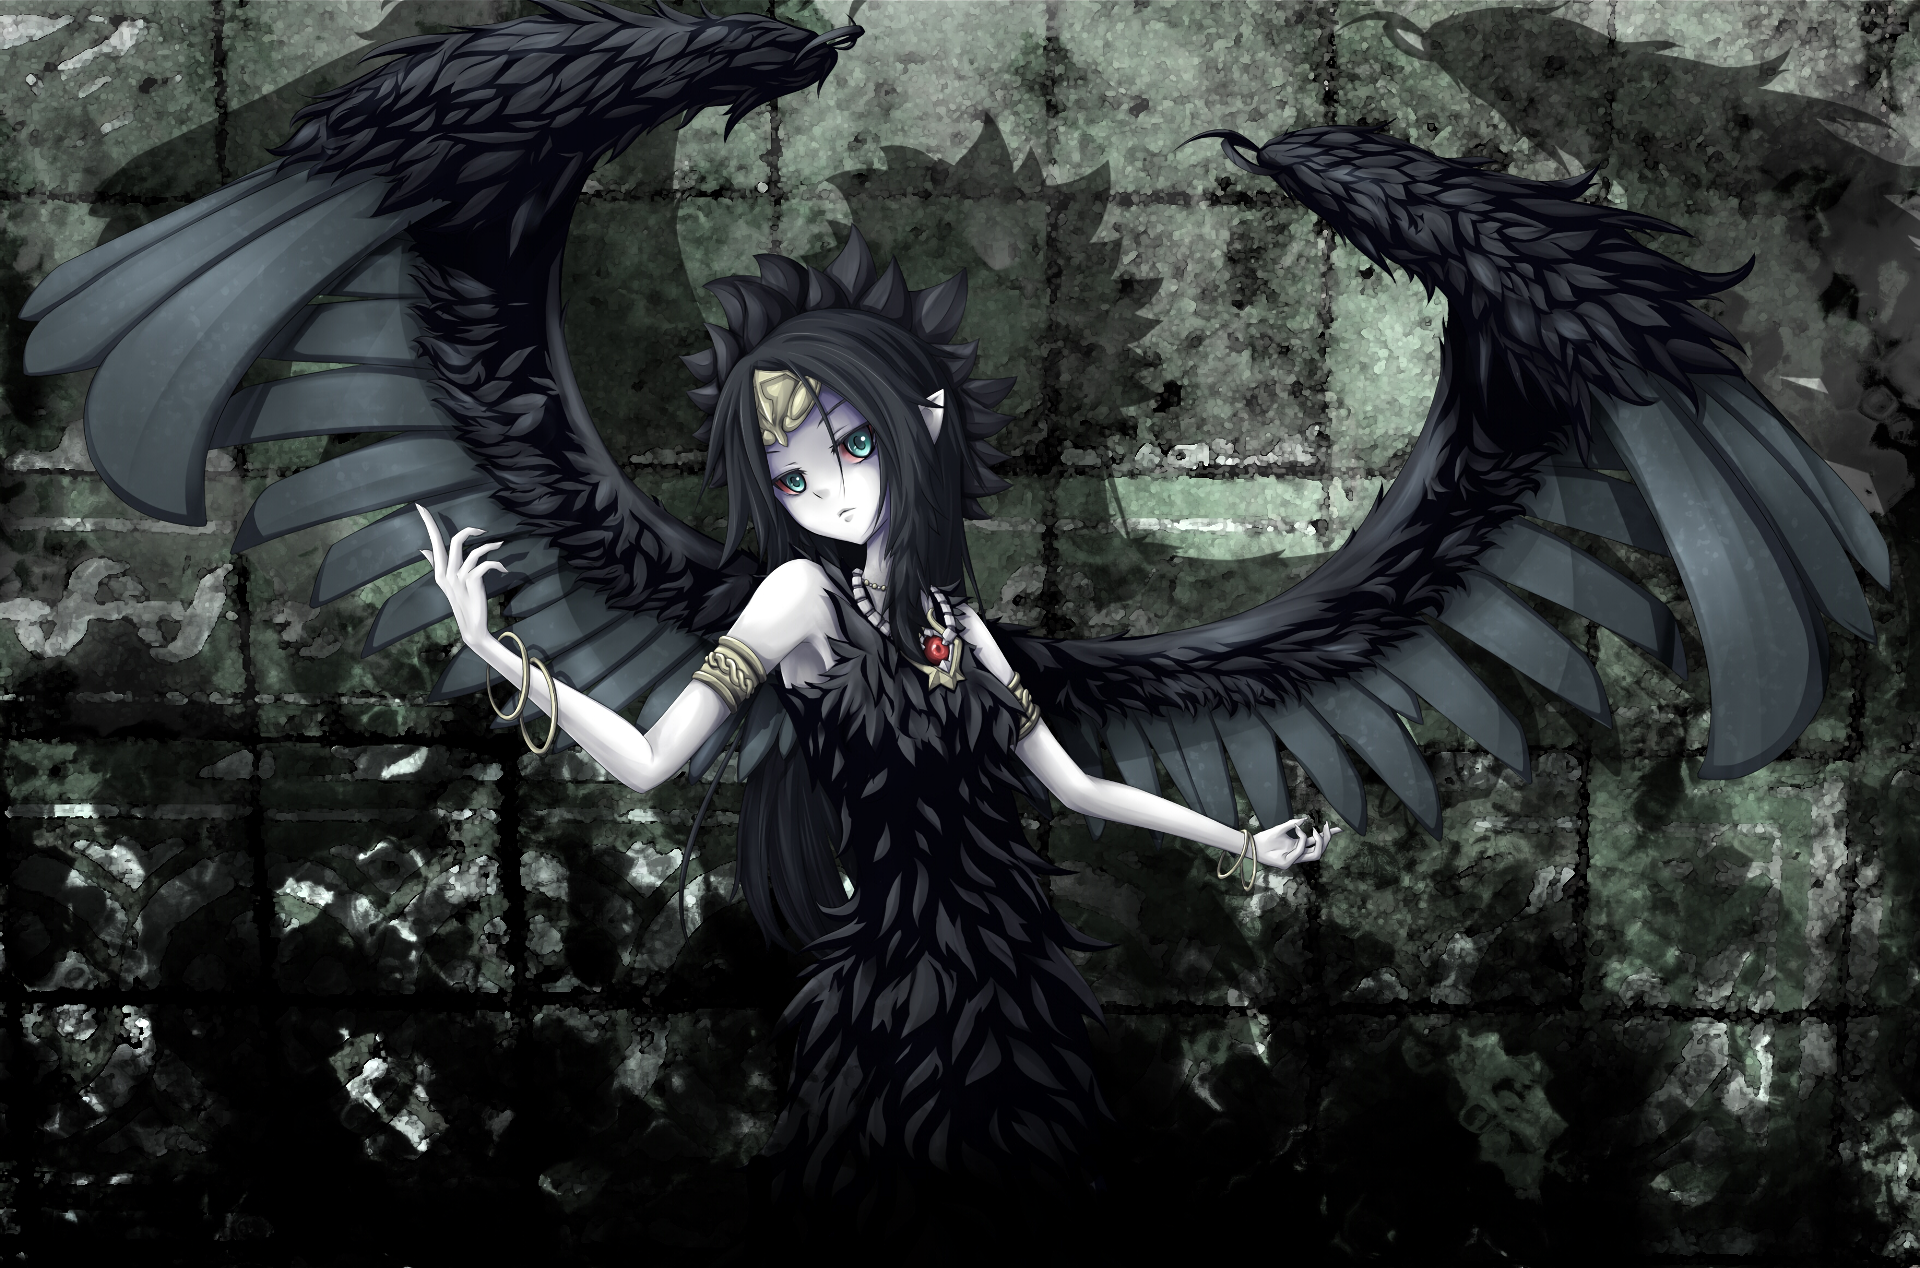 Anime Dark Angel Hd Wallpaper Background Image 1920x1268 Id